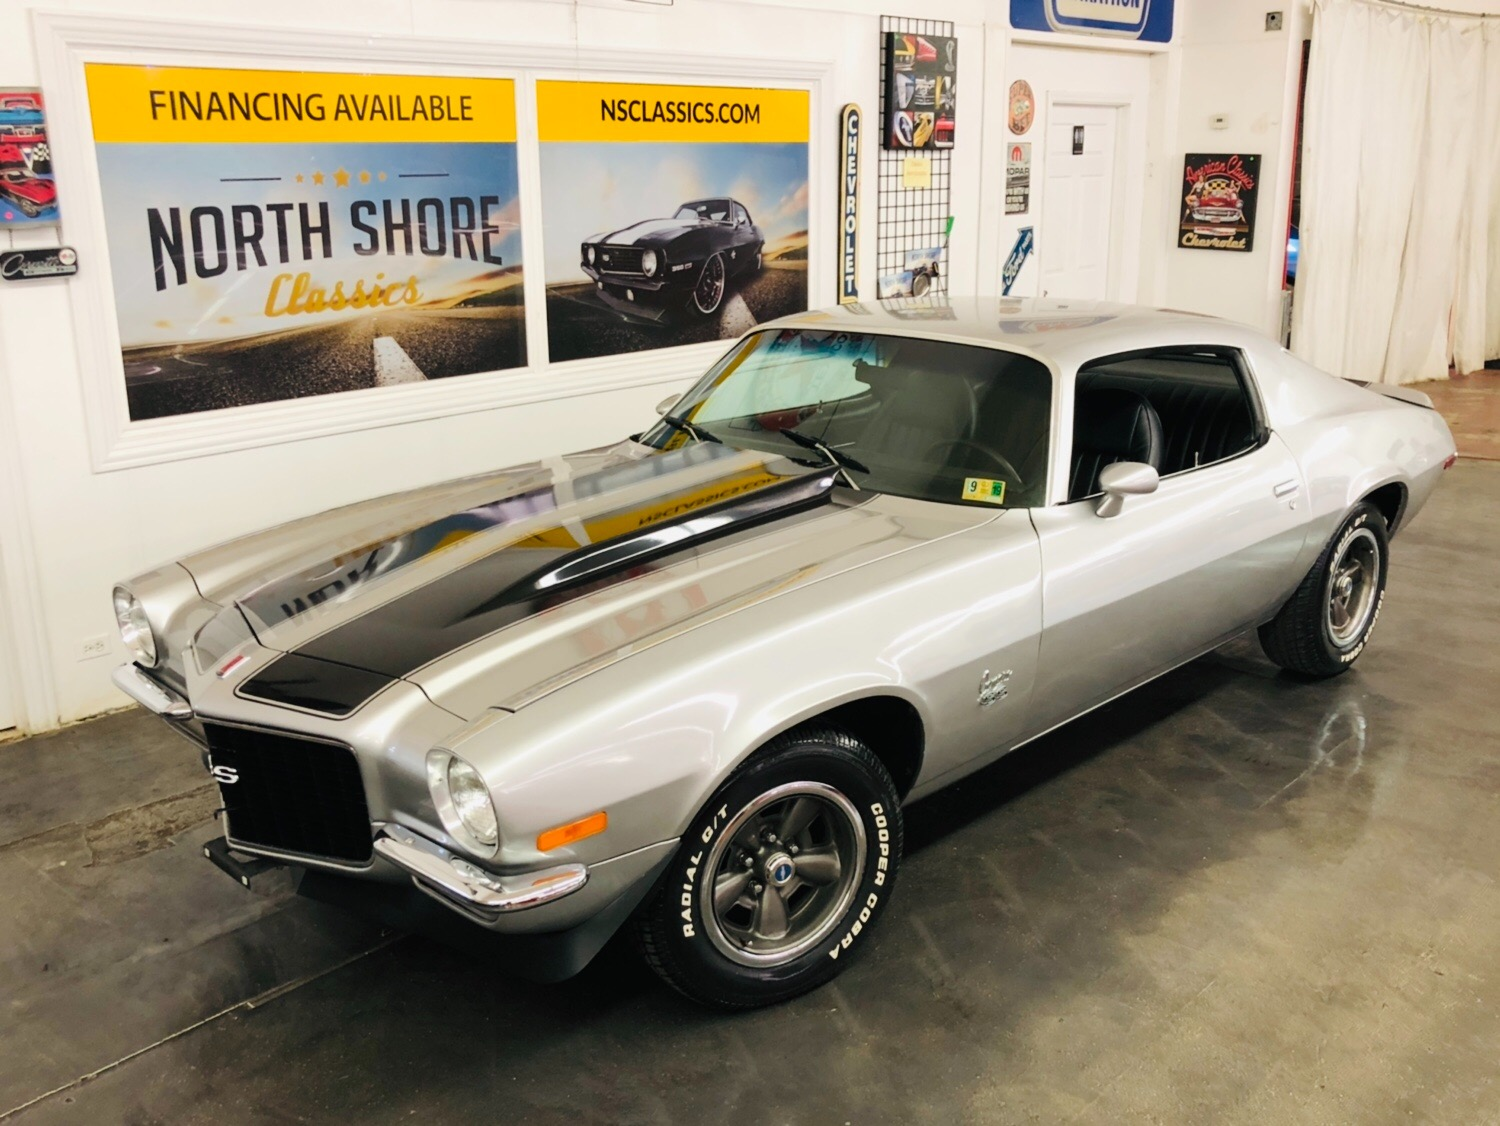 Photo 1972 Chevrolet Camaro - SS TRIBUTE - 383 STROKER ENGINE - 700R4 TRANS - SEE VIDEO -